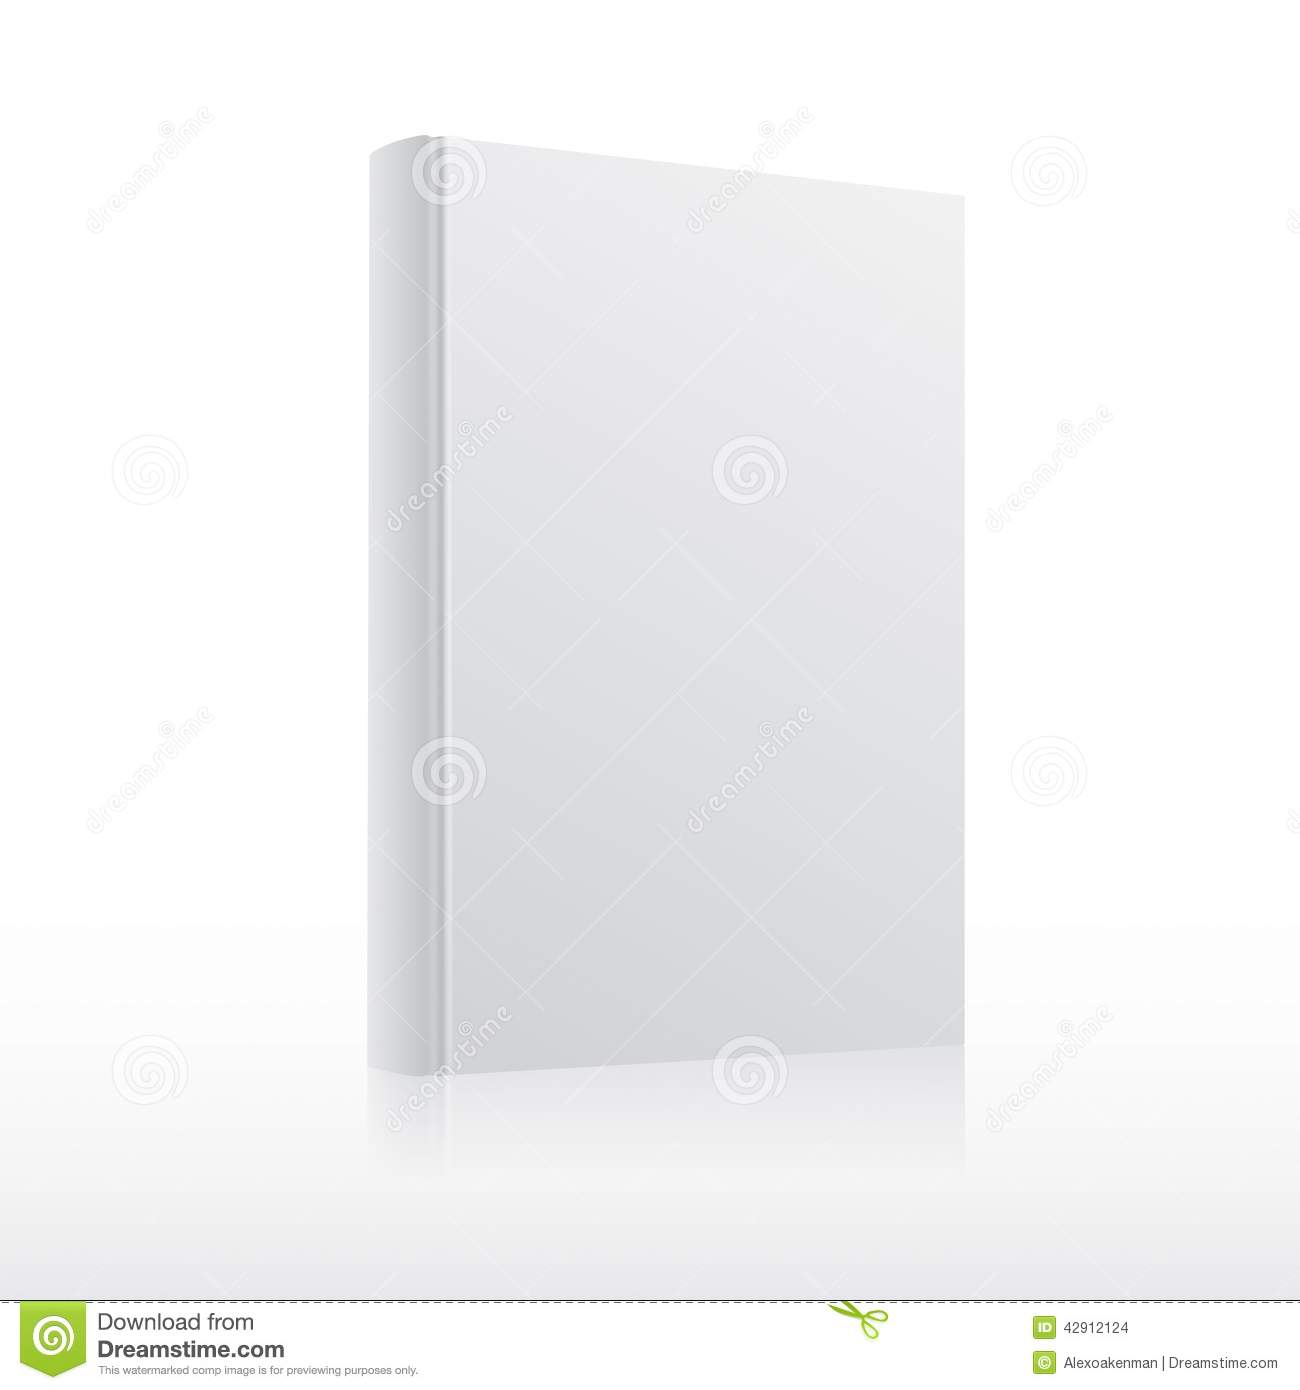 Blank White Book Cover : Blank vector white book cover template stock